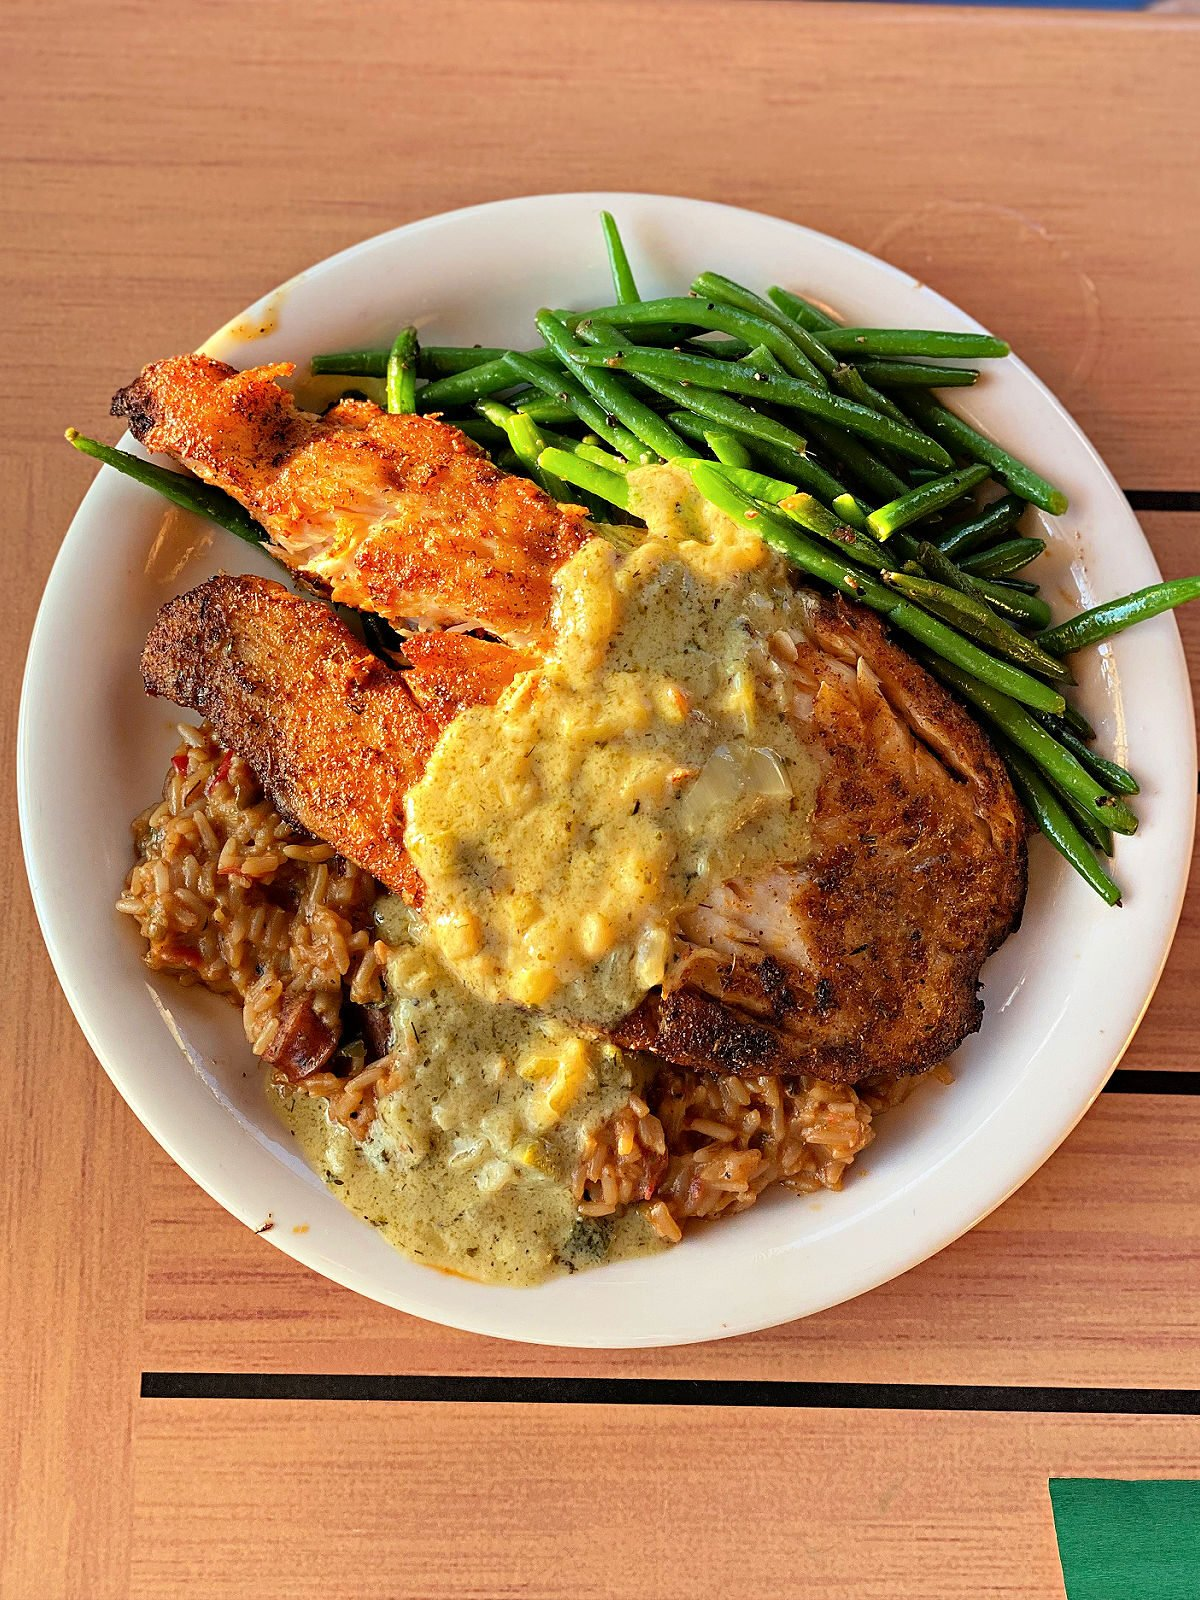 A plate with triple tail, green beans, and seasoned rice.